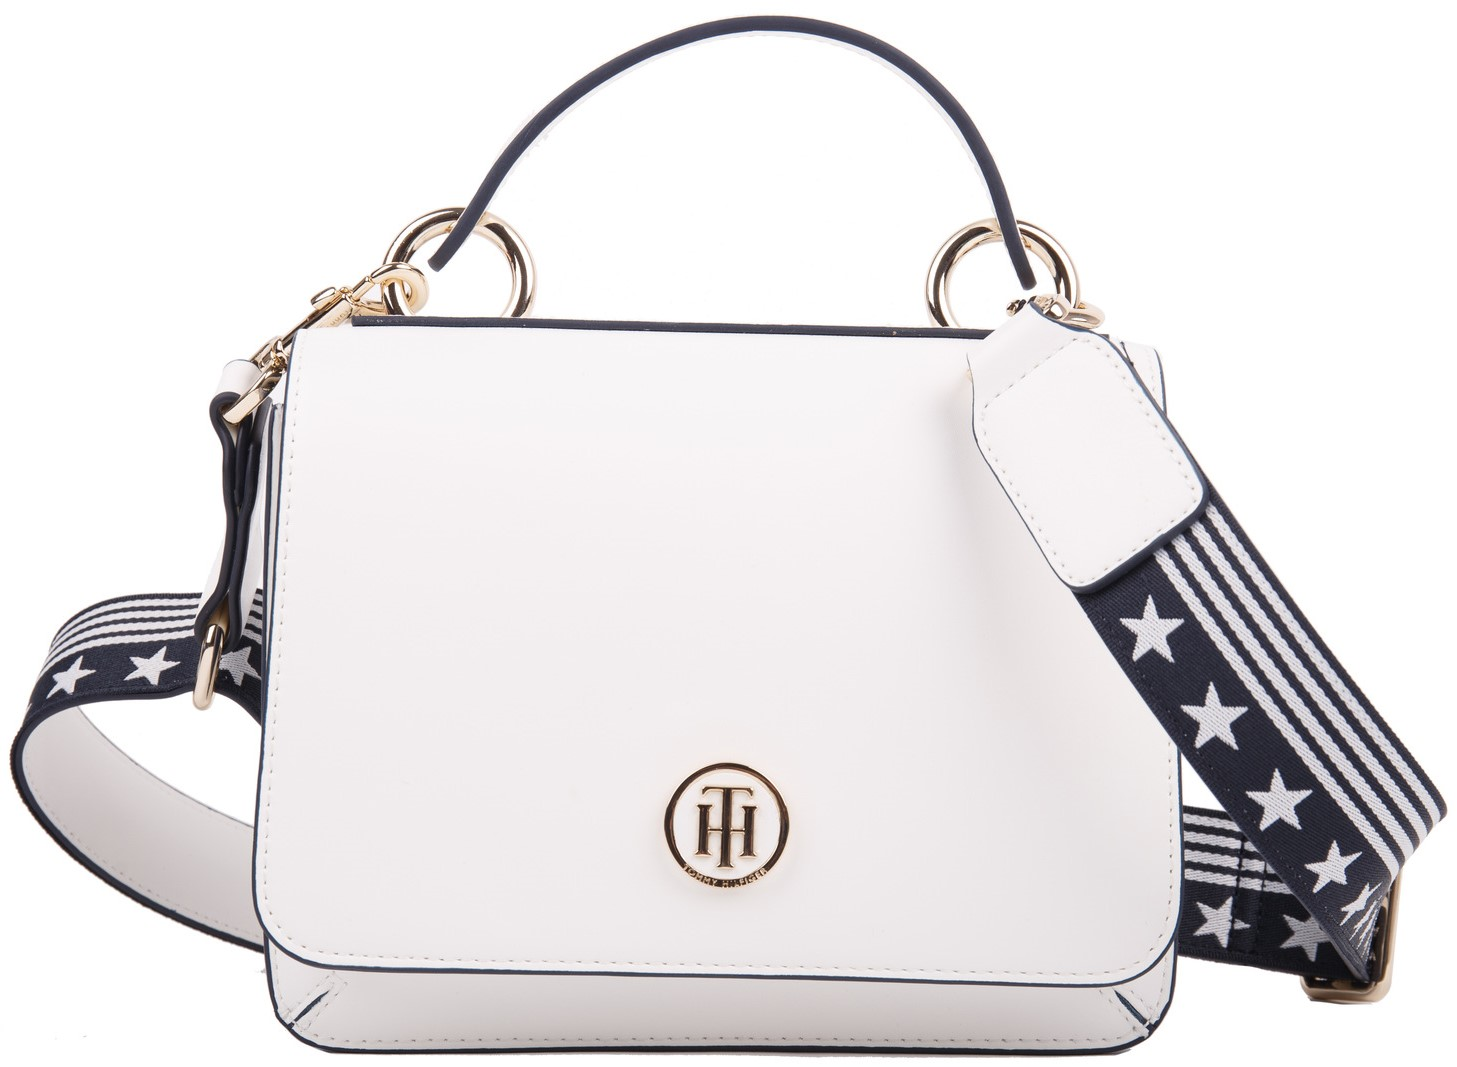 8a17e3bf Tommy Hilfiger white handbag Youthful Heritage Flap Crossover ...